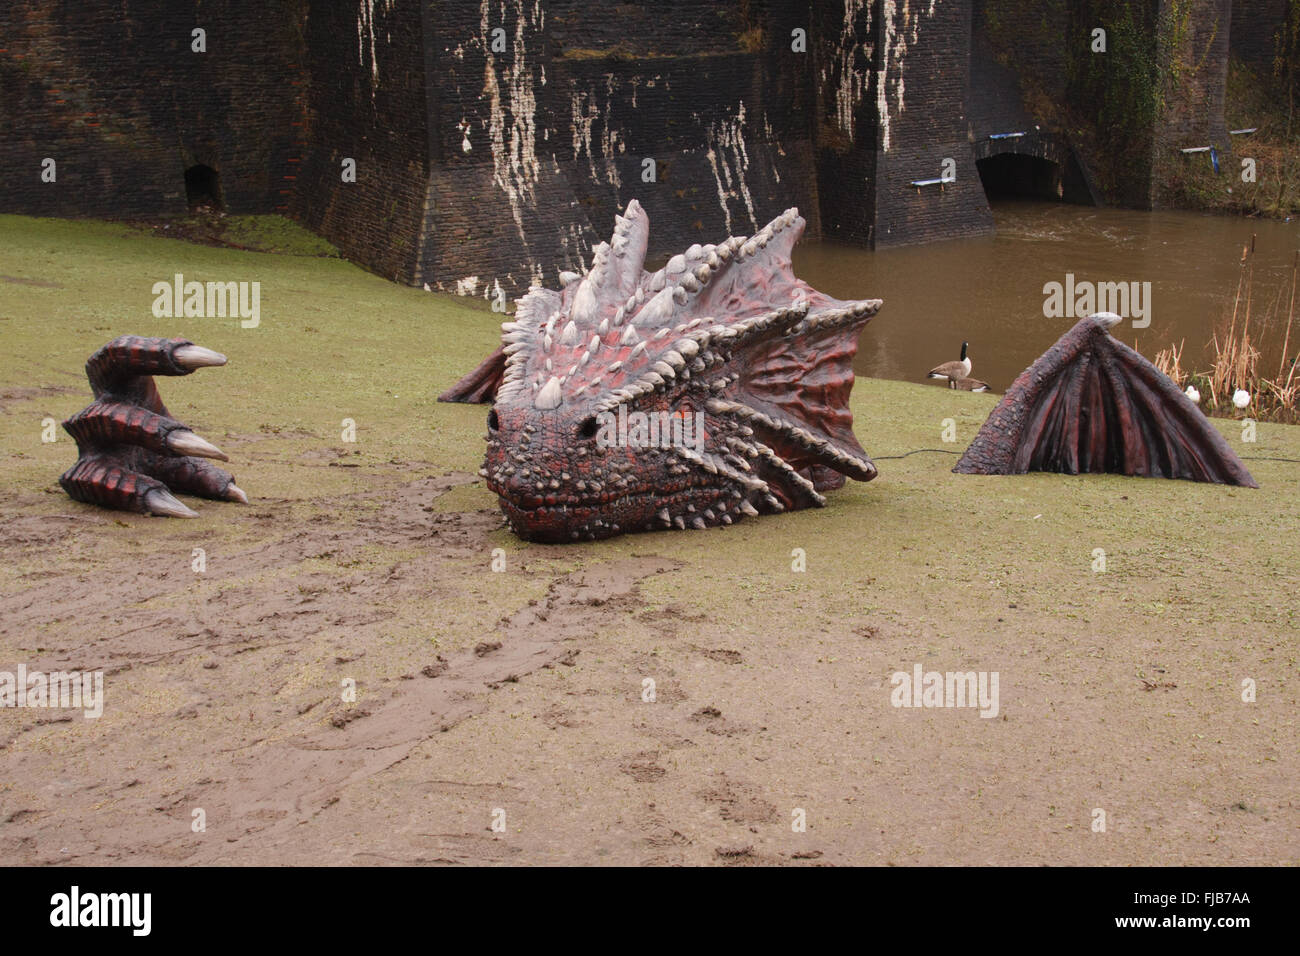 Caerphilly Castle, South Wales, UK. 1st March, 2016. Enormous Dragon placed on the grounds of Caerphilly Castle, - Stock Image